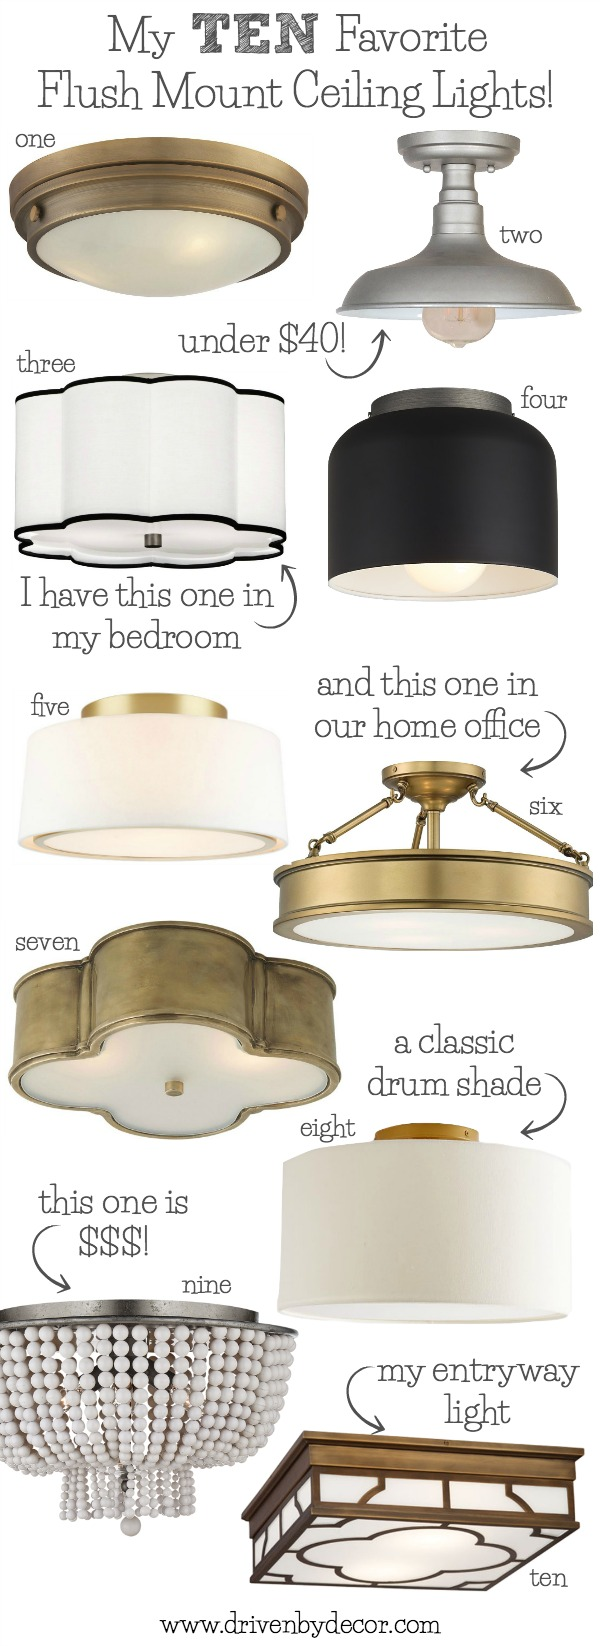 Best flush mount ceiling lighting my 10 faves from inexpensive to love these flush mount ceiling light great choices for your bedrooms kitchen family mozeypictures